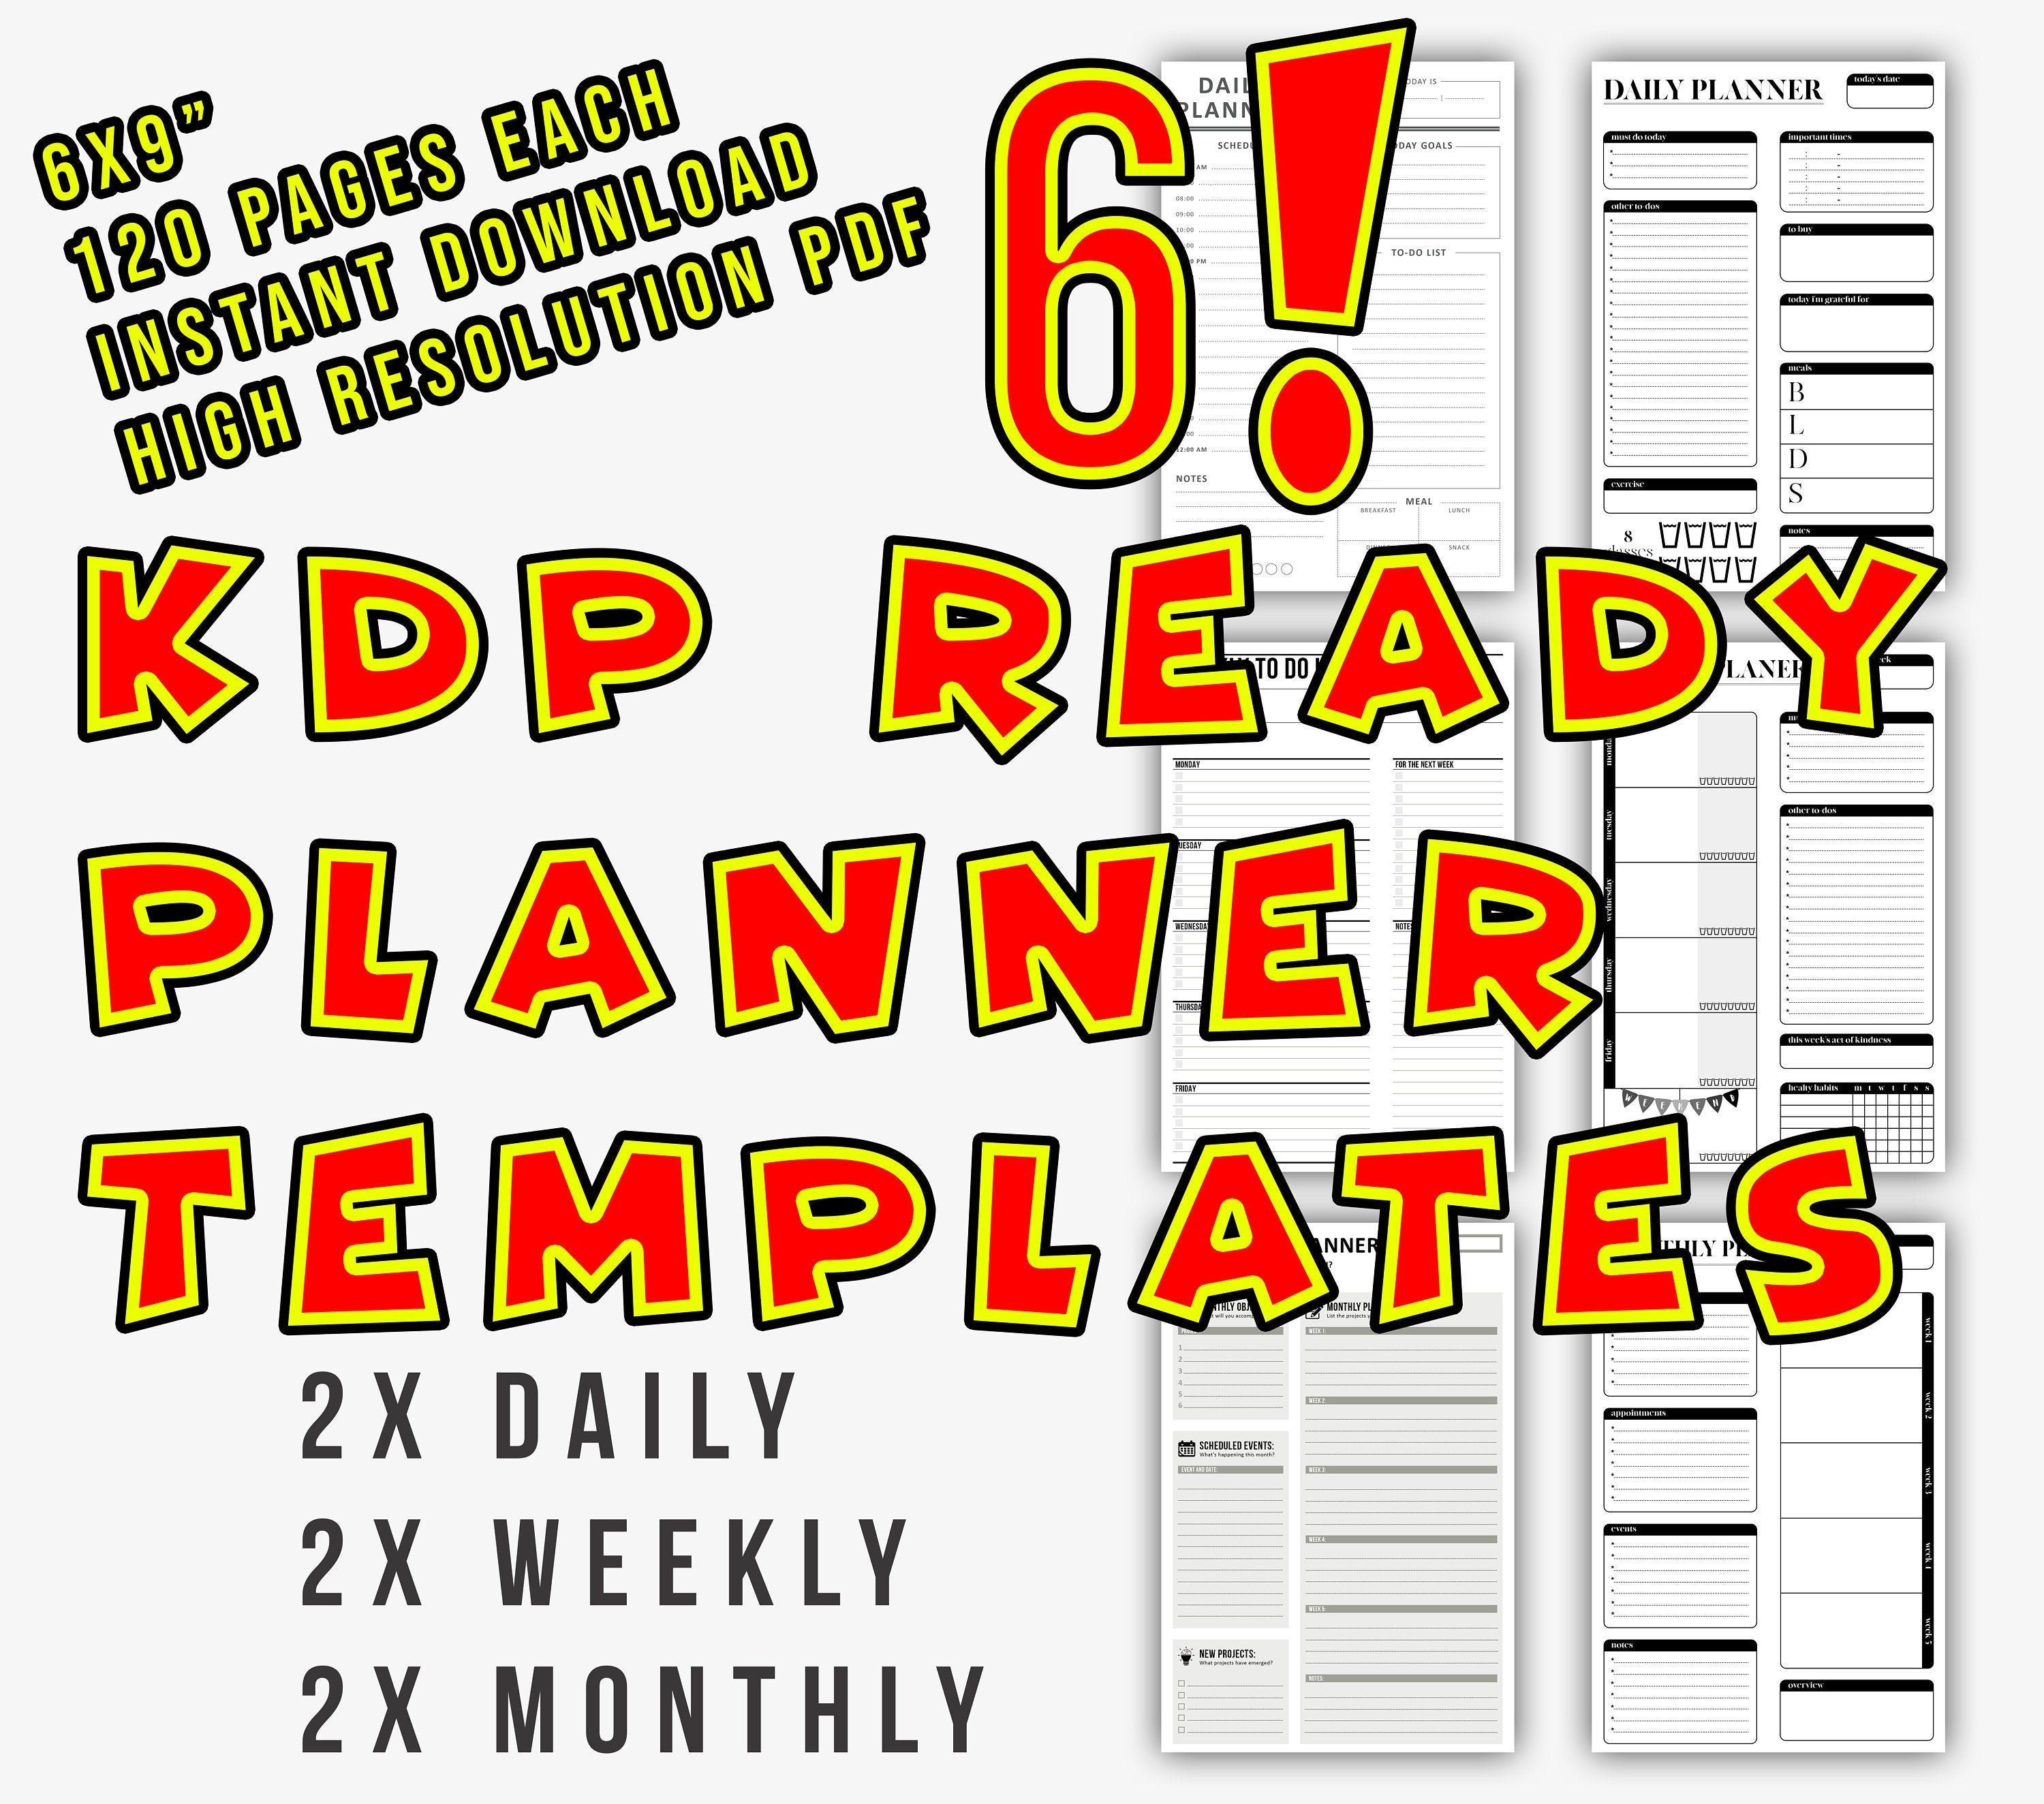 6 X 120 Pages 6x9 Templates For Kdp Planner Template Ready 2 Daily 2 Weekly 2 Monthly Kindle Direct Publishing Low Content Books